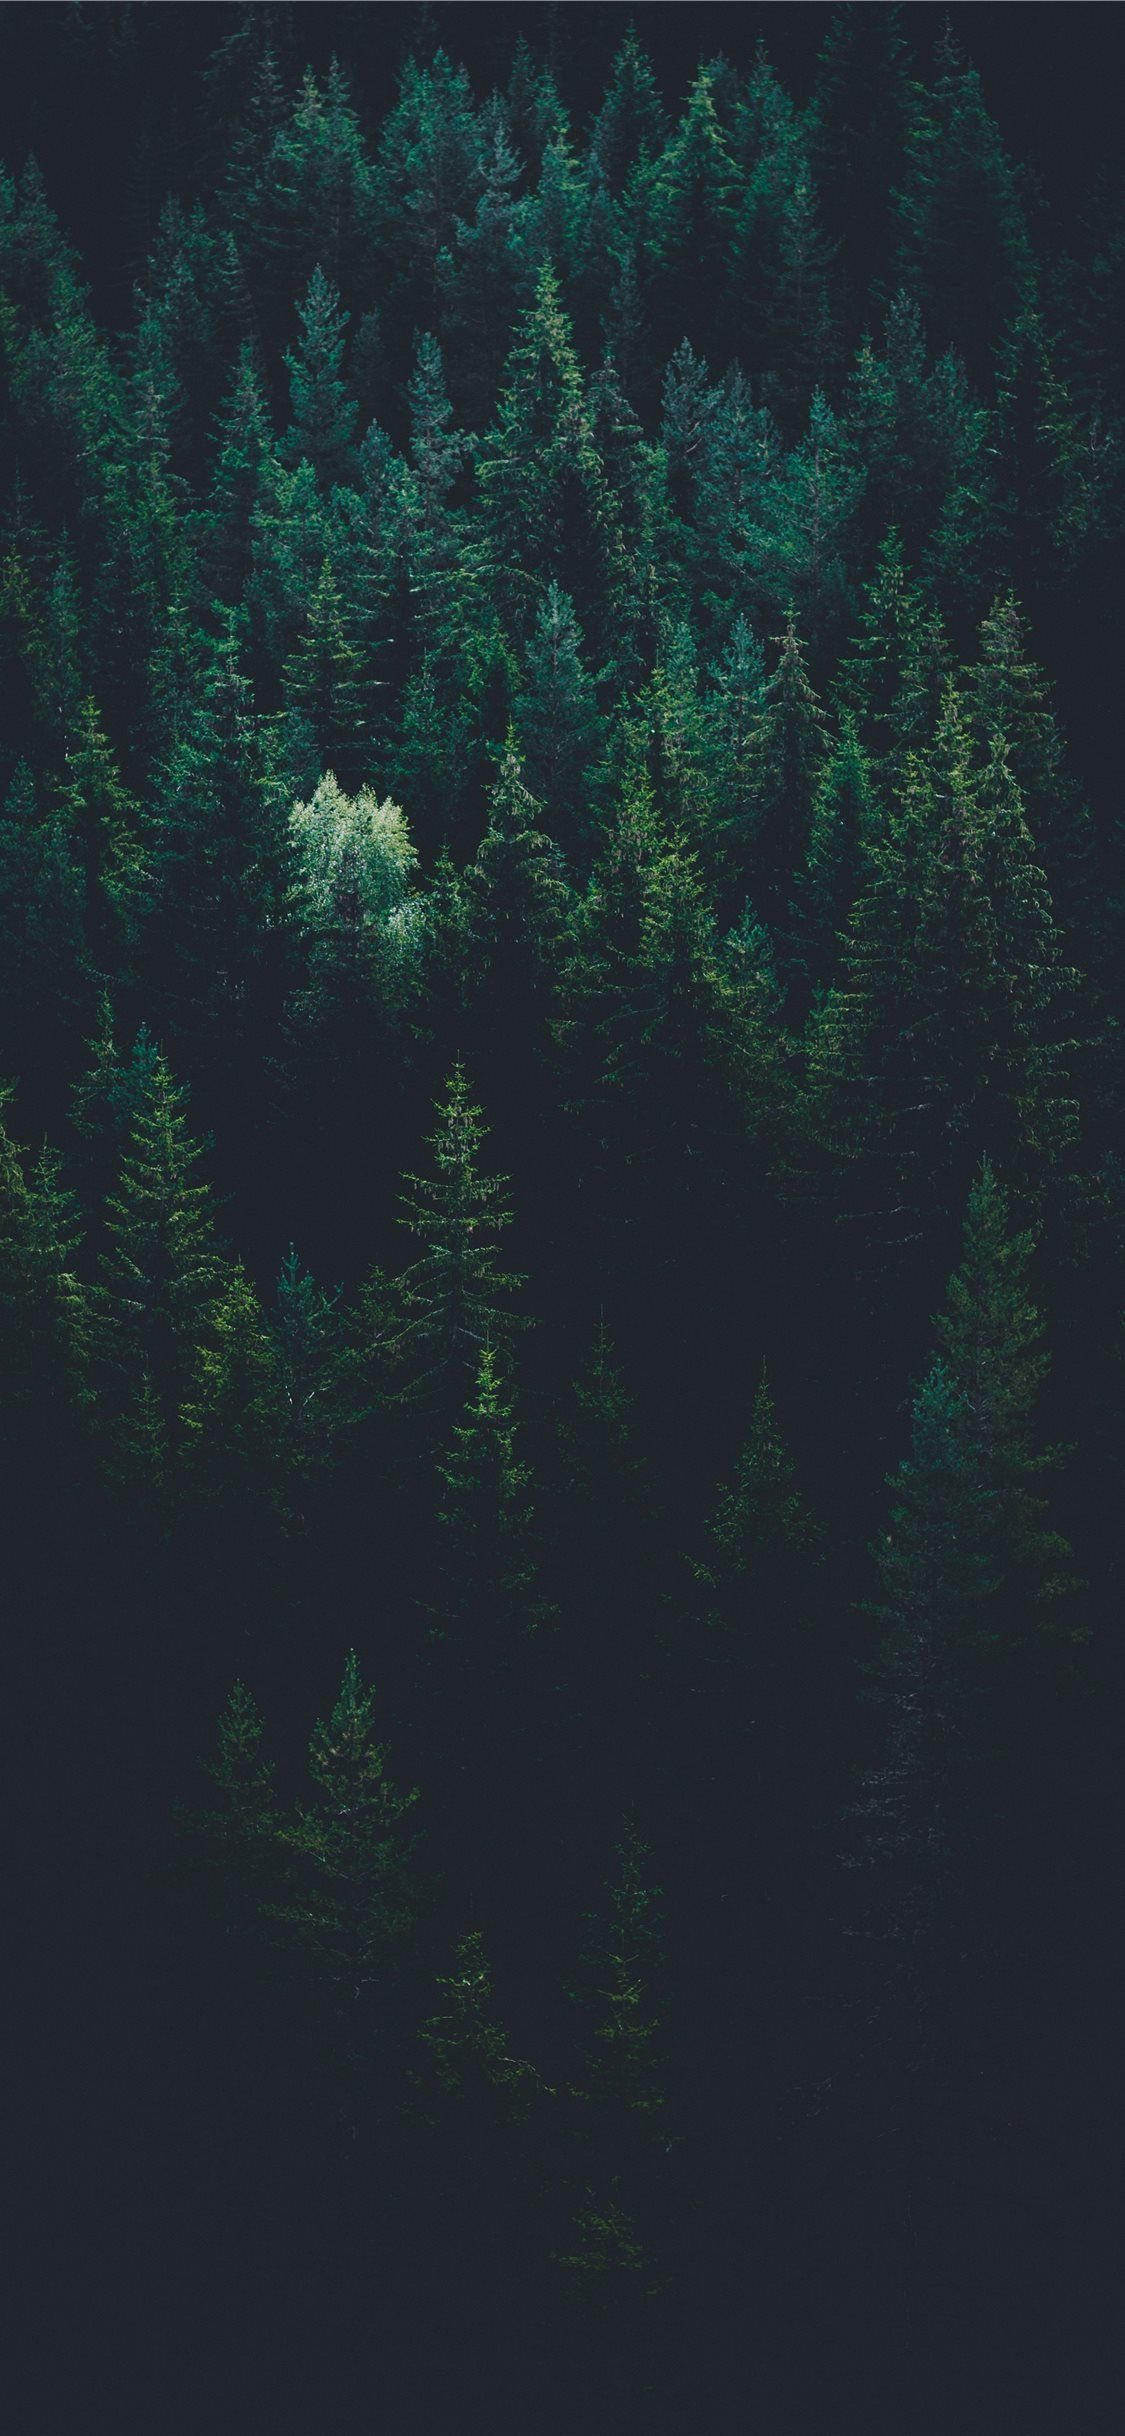 Scenery Of Forest Trees Iphone X Wallpapers In 2020 Fotografiya